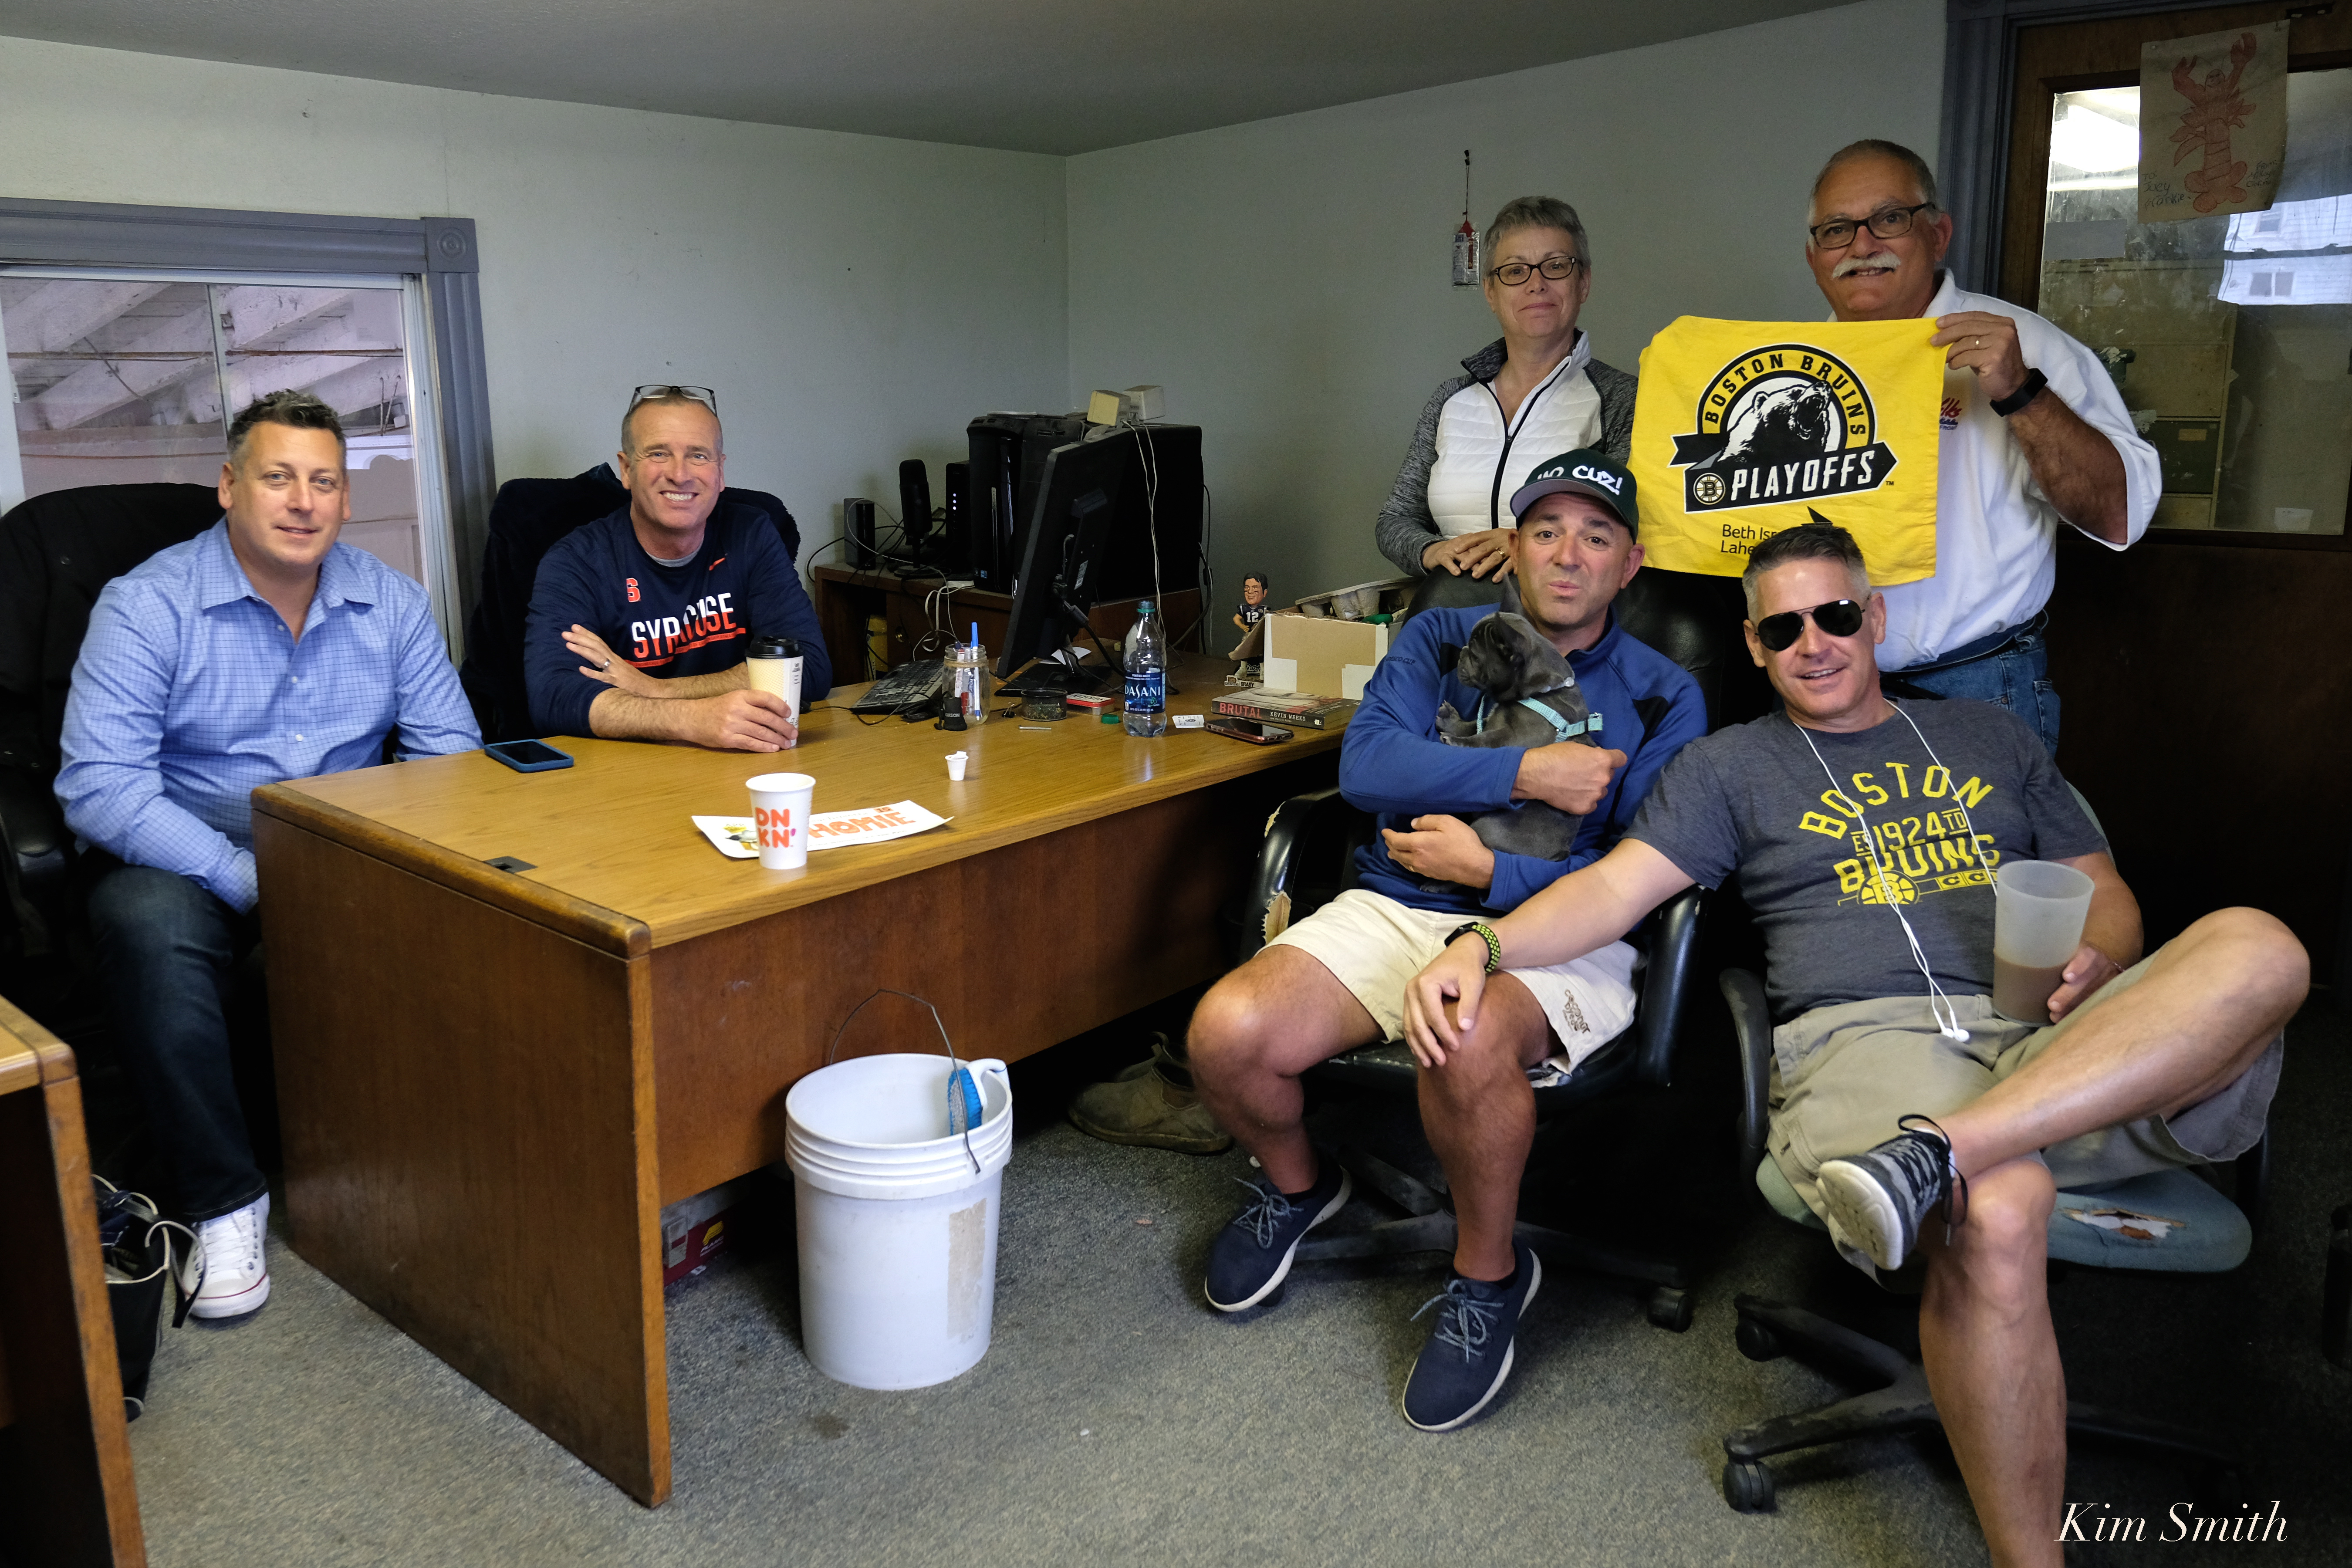 GloucesterCast 337 with Pat and Jimmy Dalpiaz, Chris McCarthy and